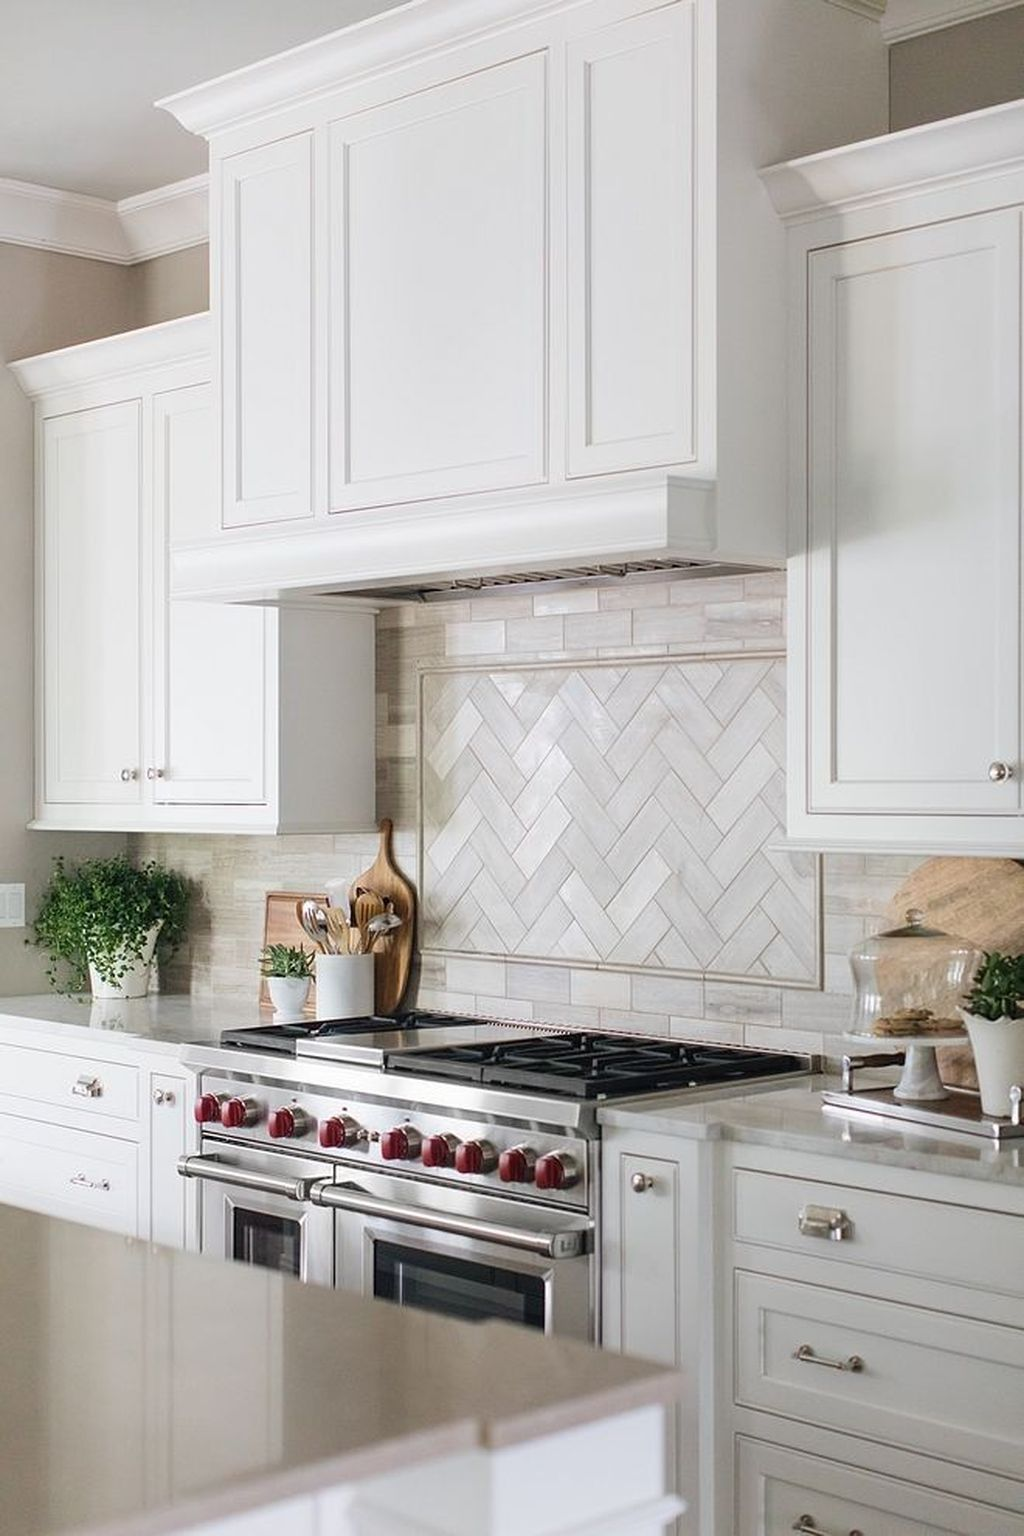 32 popular modern farmhouse kitchen backsplash ideas kitchenideas https www ohhomede on farmhouse kitchen backsplash id=98650